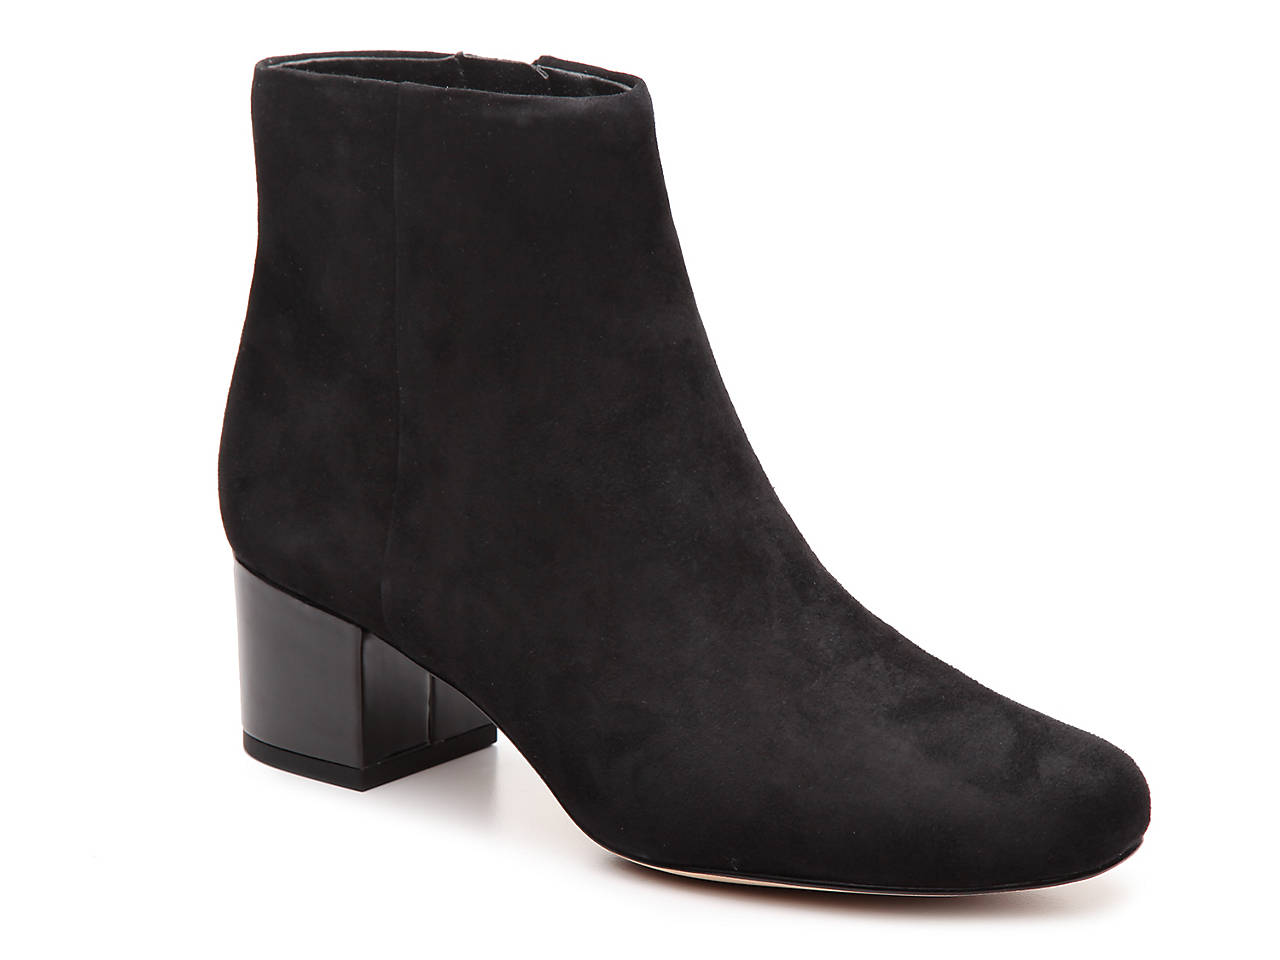 48551e0736e445 Sam Edelman Edith Bootie Women s Shoes